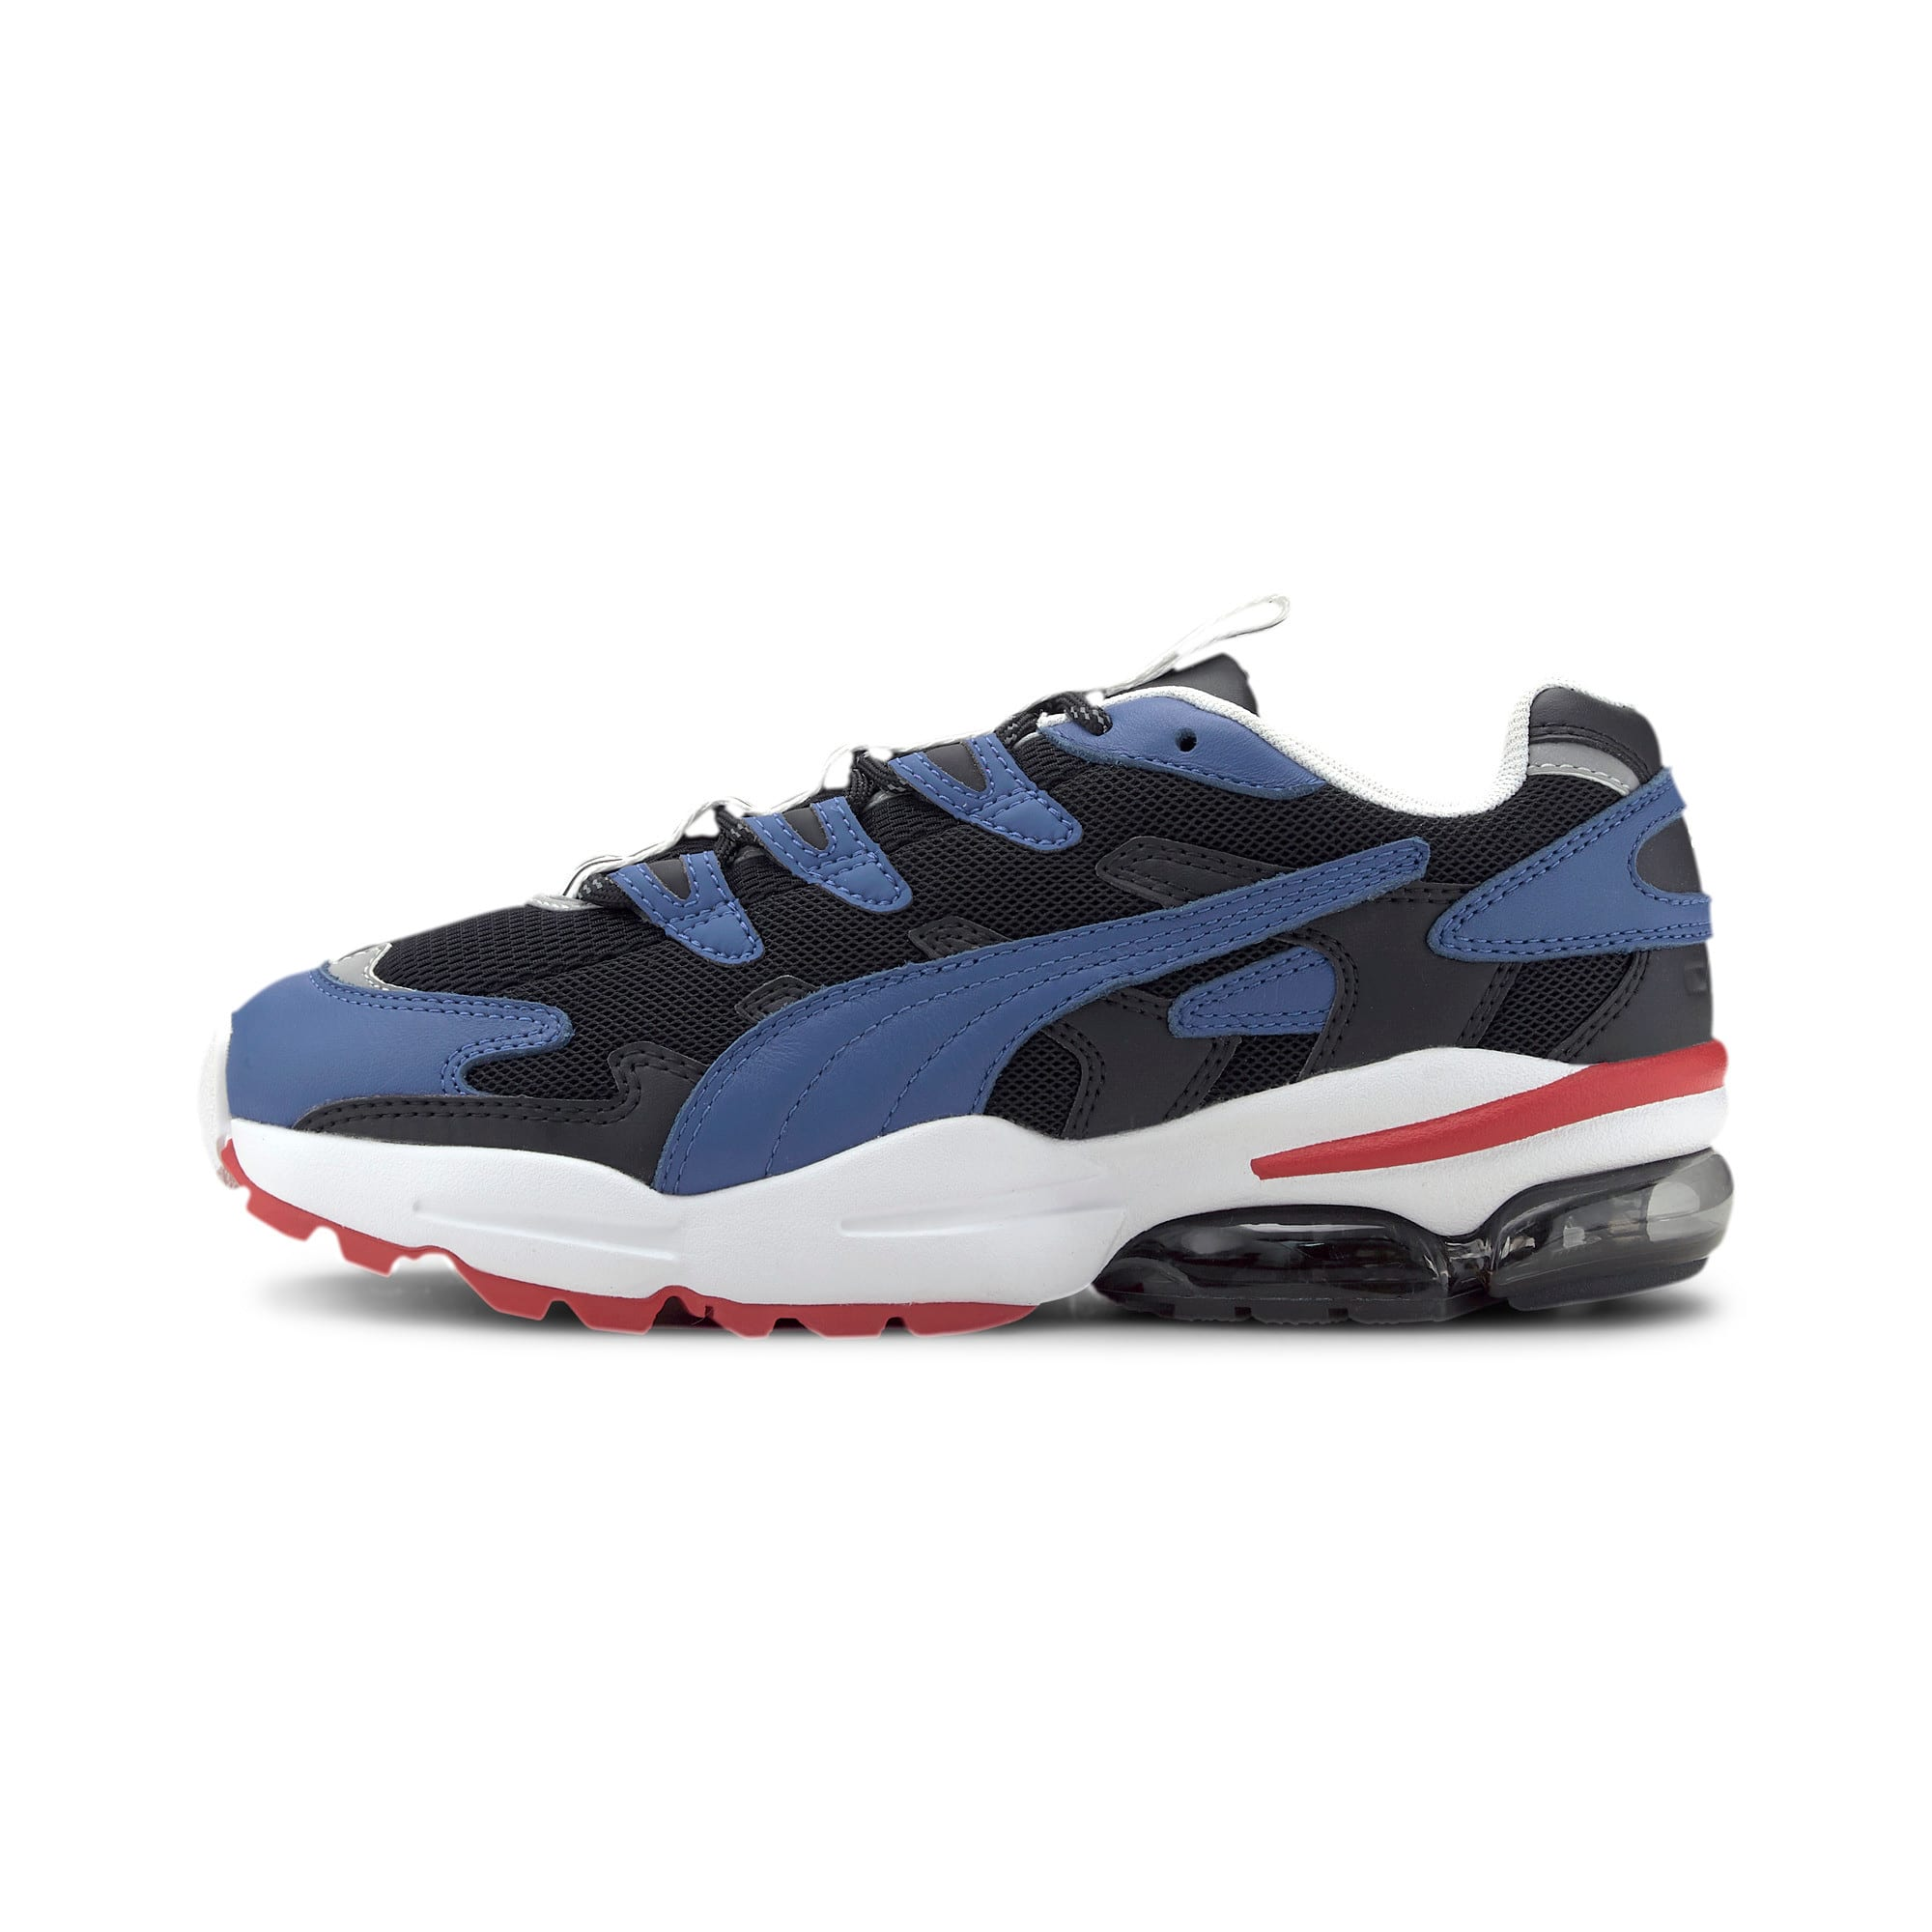 Thumbnail 1 of PUMA x KARL LAGERFELD CELL Alien Trainers, Puma Black-TRUE BLUE, medium